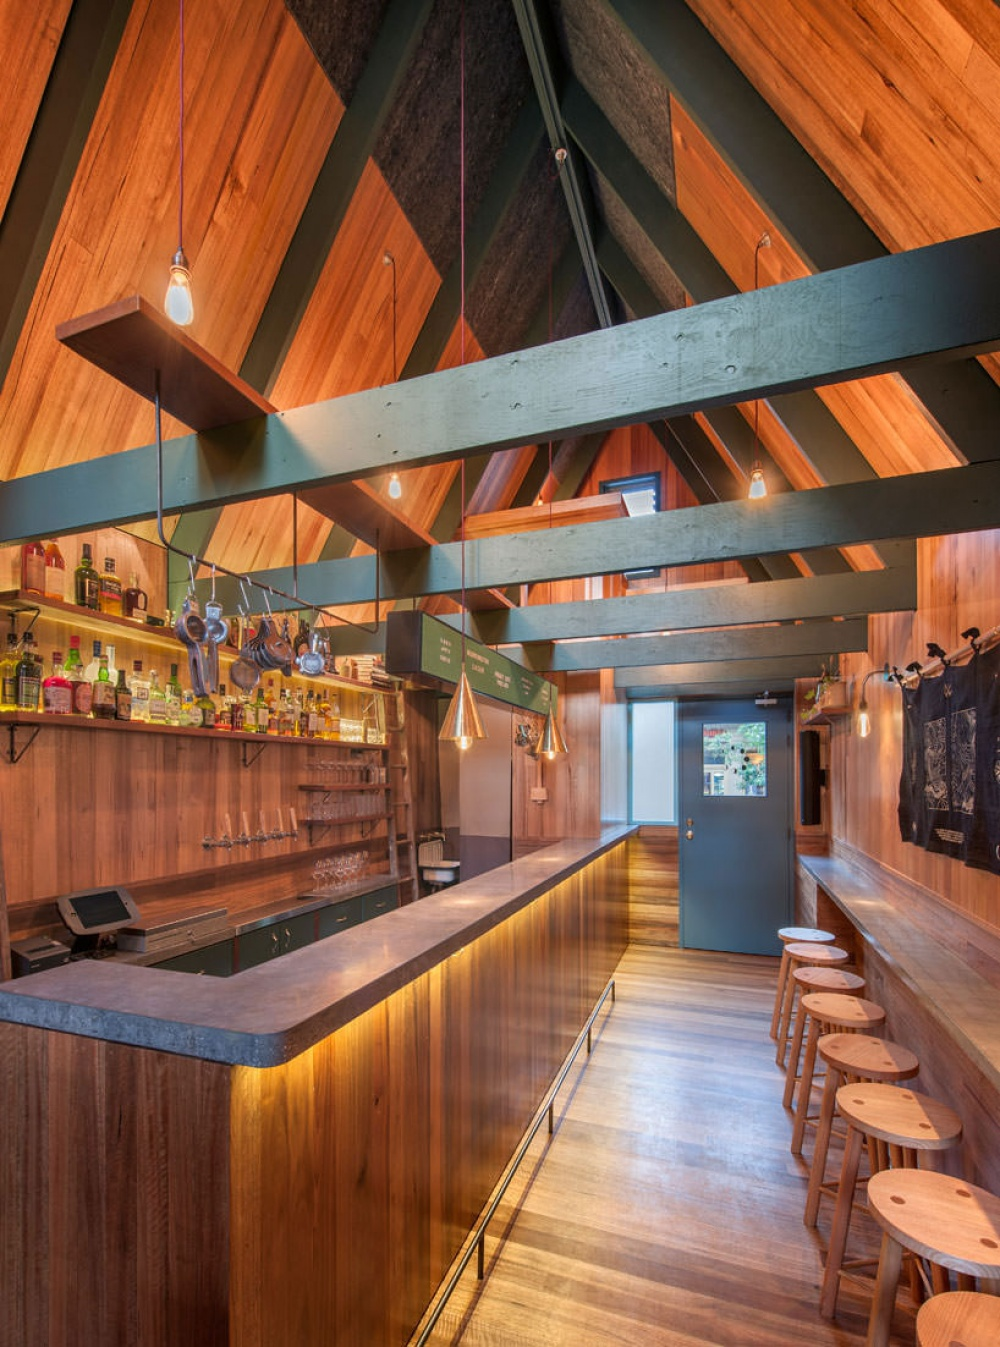 519305-1000-1454565135-A-bar-in-Adelaide-thats-just-like-the-tiny-house-from-Up2